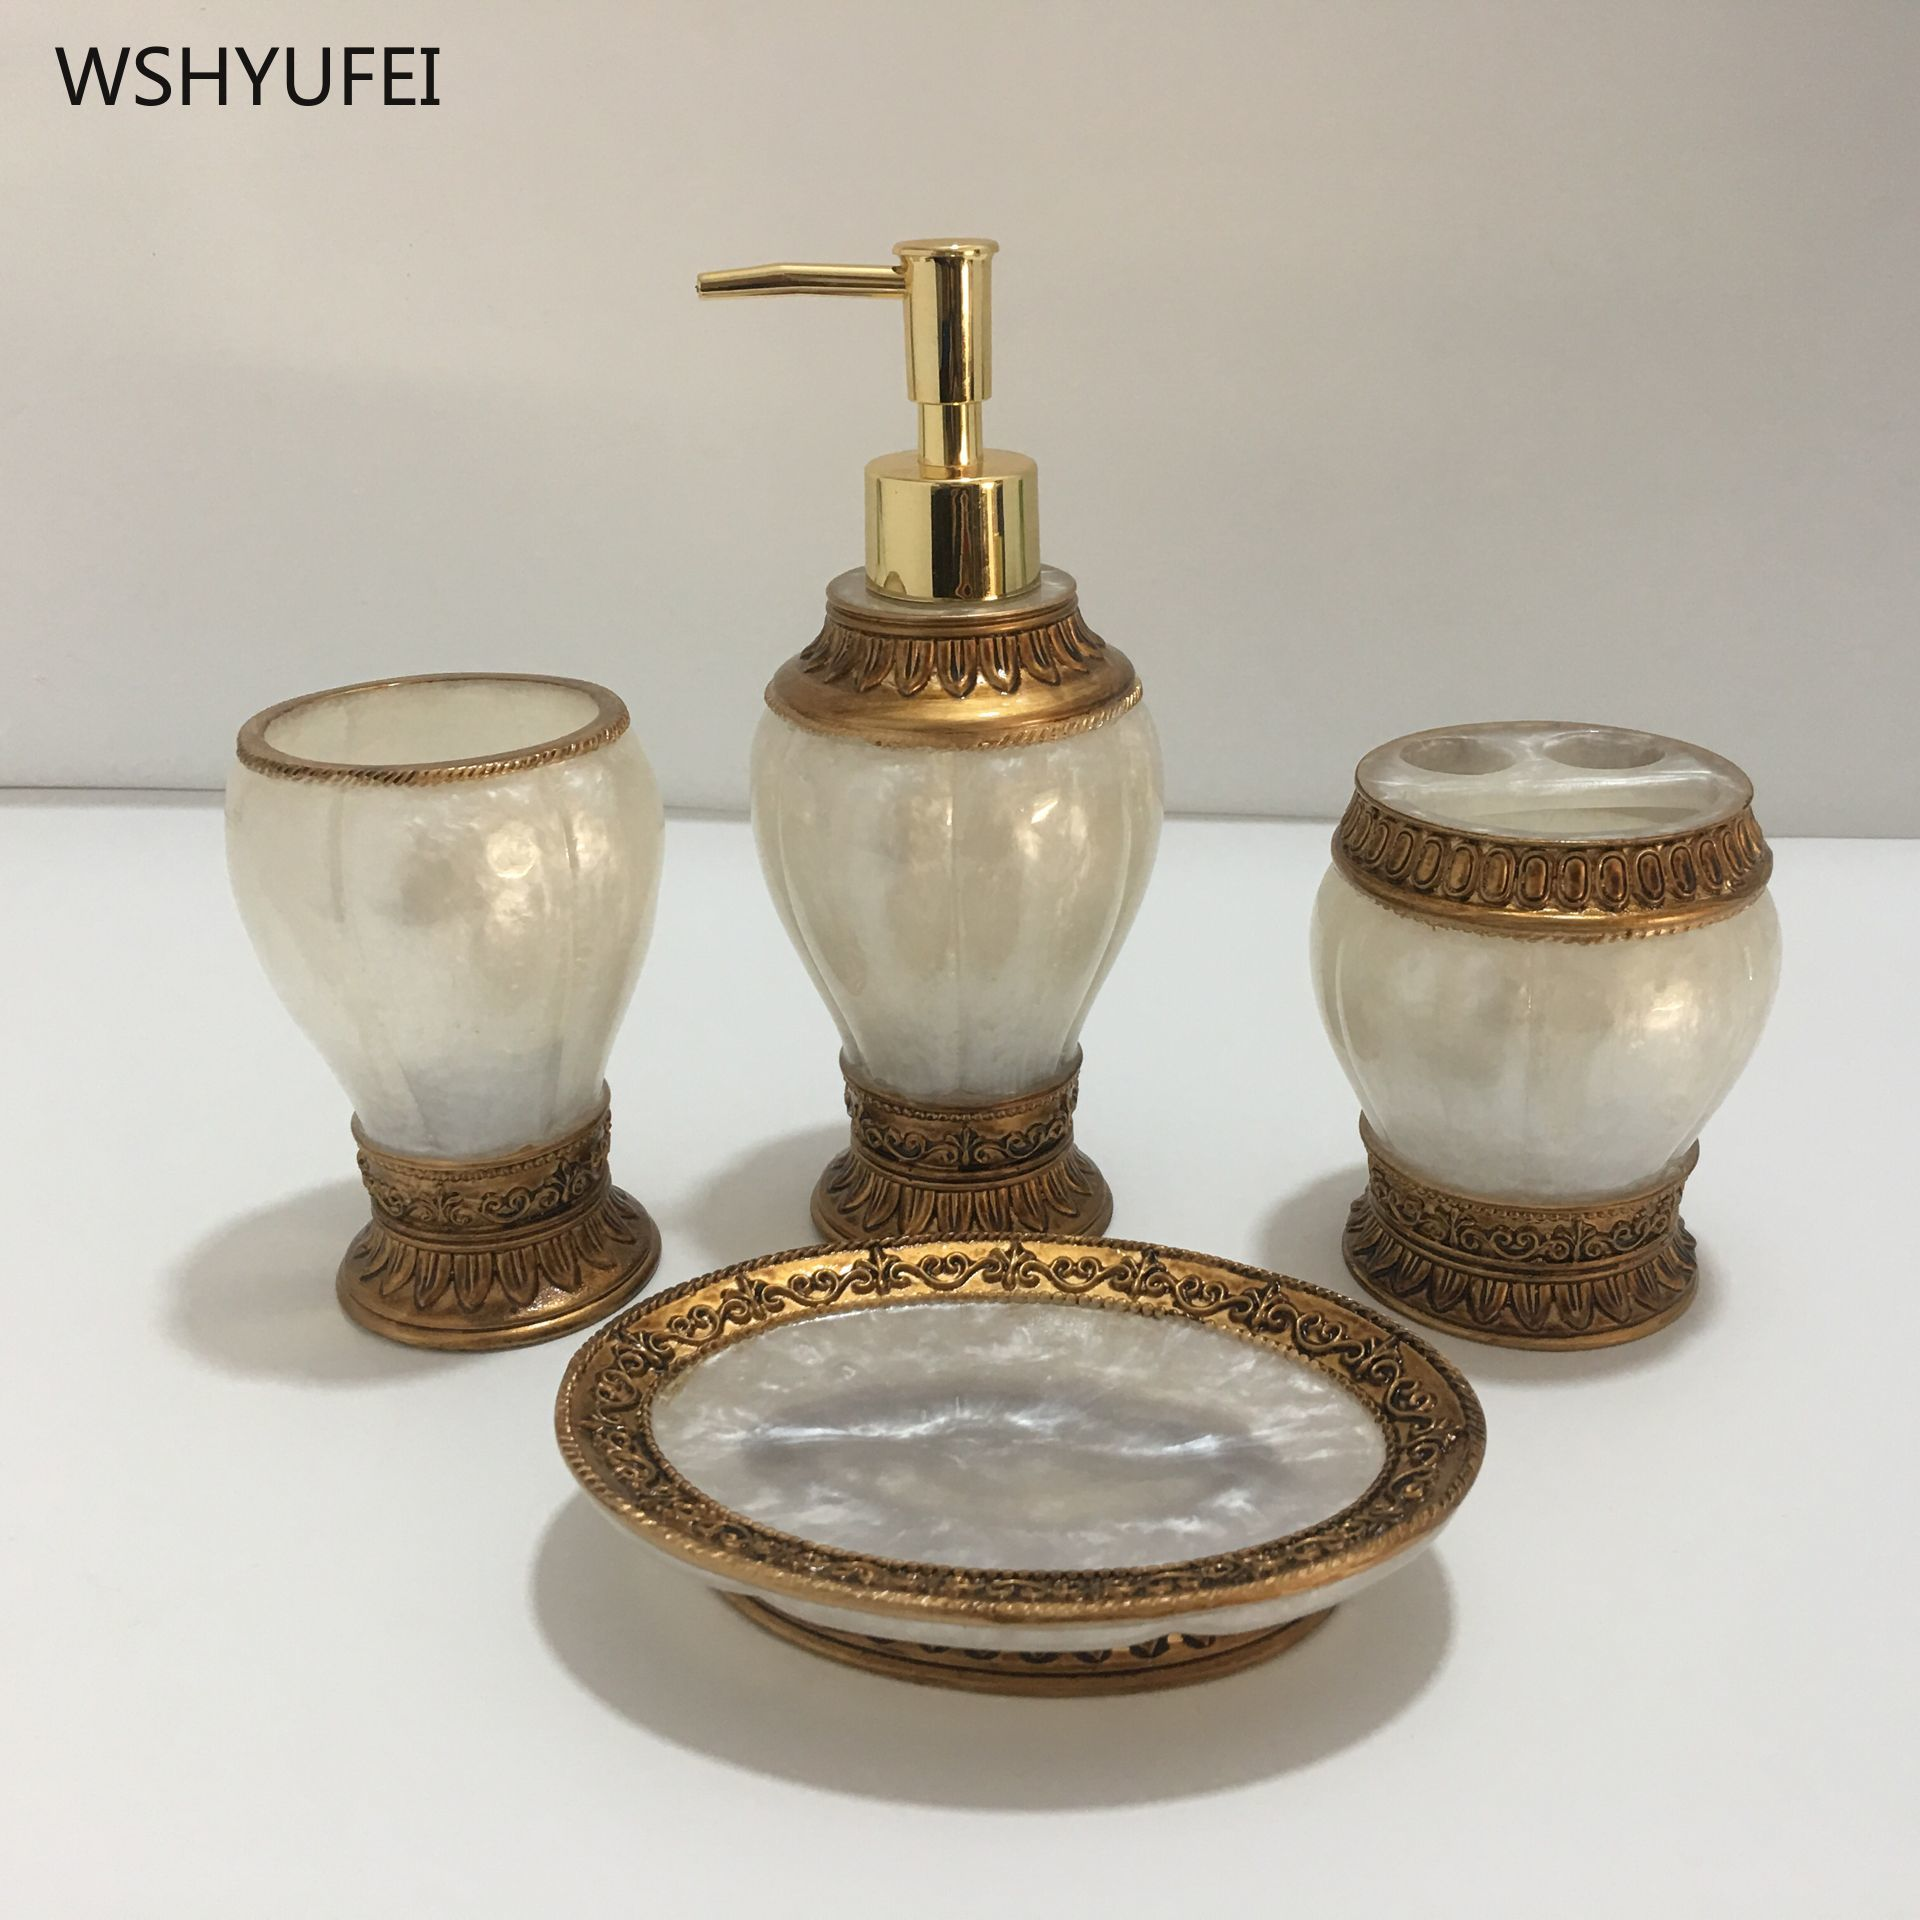 Retro white court gold accessories resin bathroom kit soap bottle soap dish toothbrush holder cup home hotel bathroom storage image